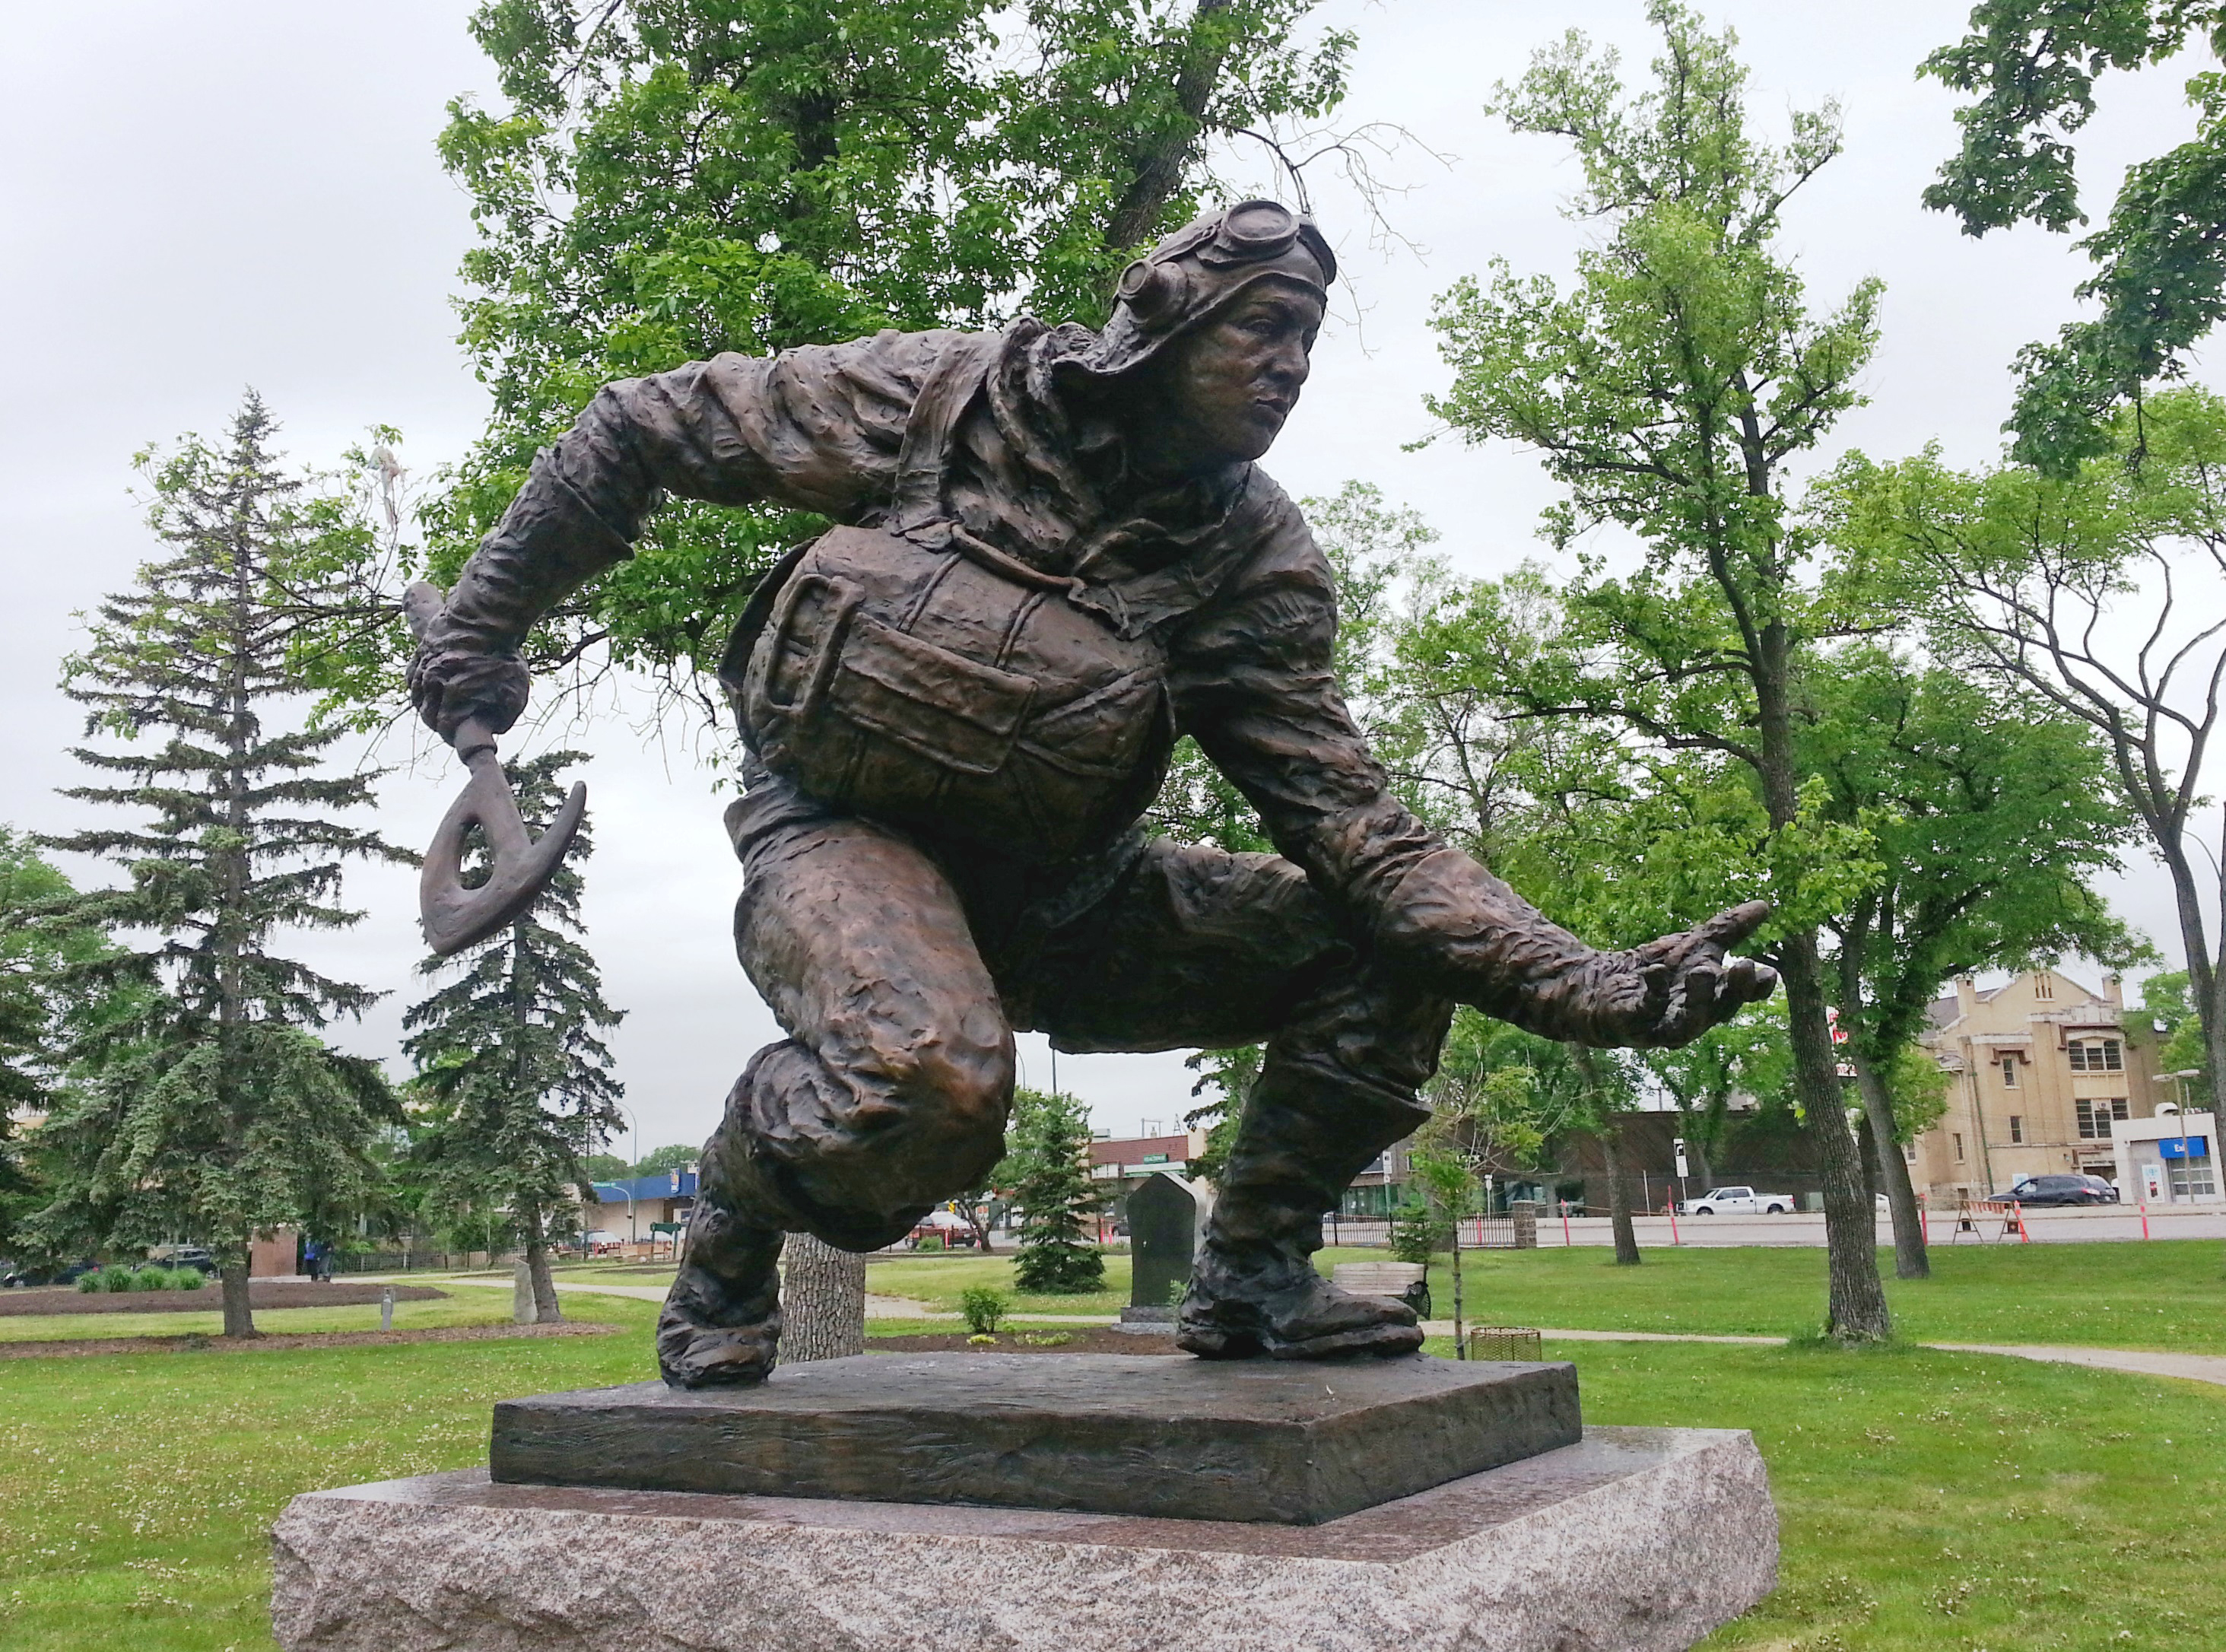 A statue commemorating Pilot Officer Andrew Mynarski, recipient of the Victoria Cross, was unveiled on June 12, 2015, in his hometown of Winnipeg. The statue portrays Pilot Officer Andrew Mynarski, fire axe in hand, in the act of trying to free his friend and fellow crew member, Flying Officer Pat Brophy, from the rear gun turret where he was trapped. PHOTO: David Elias